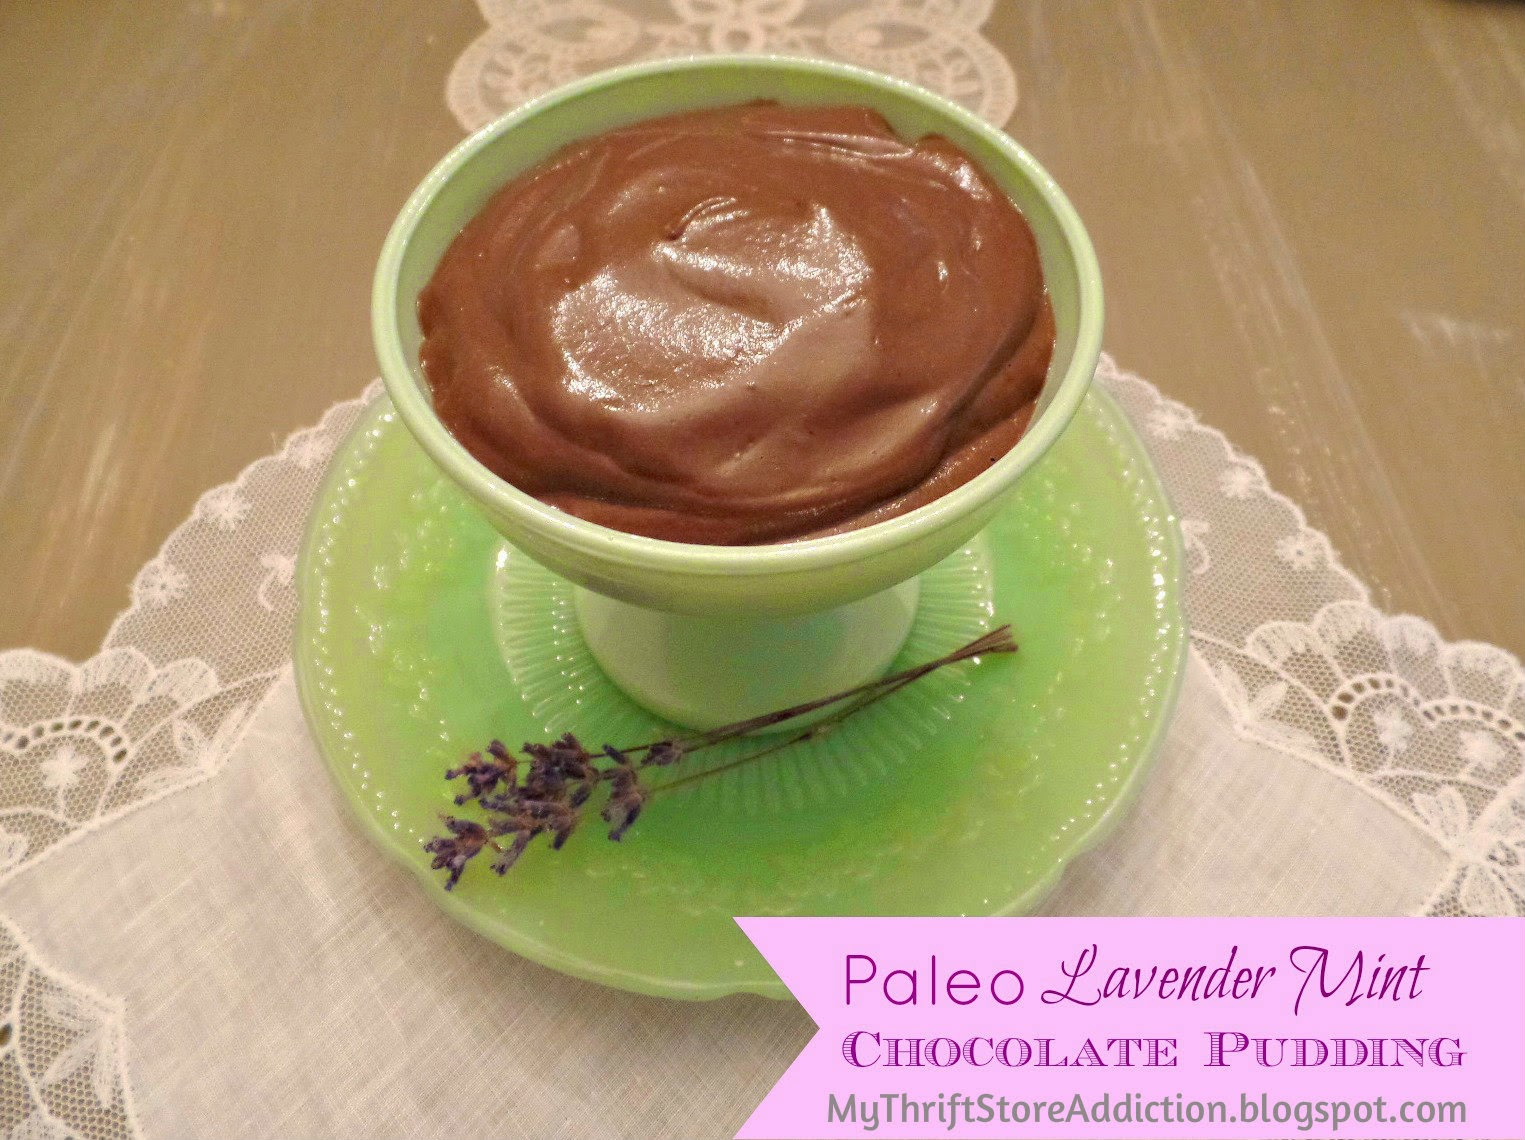 Paleo lavender mint chocolate pudding